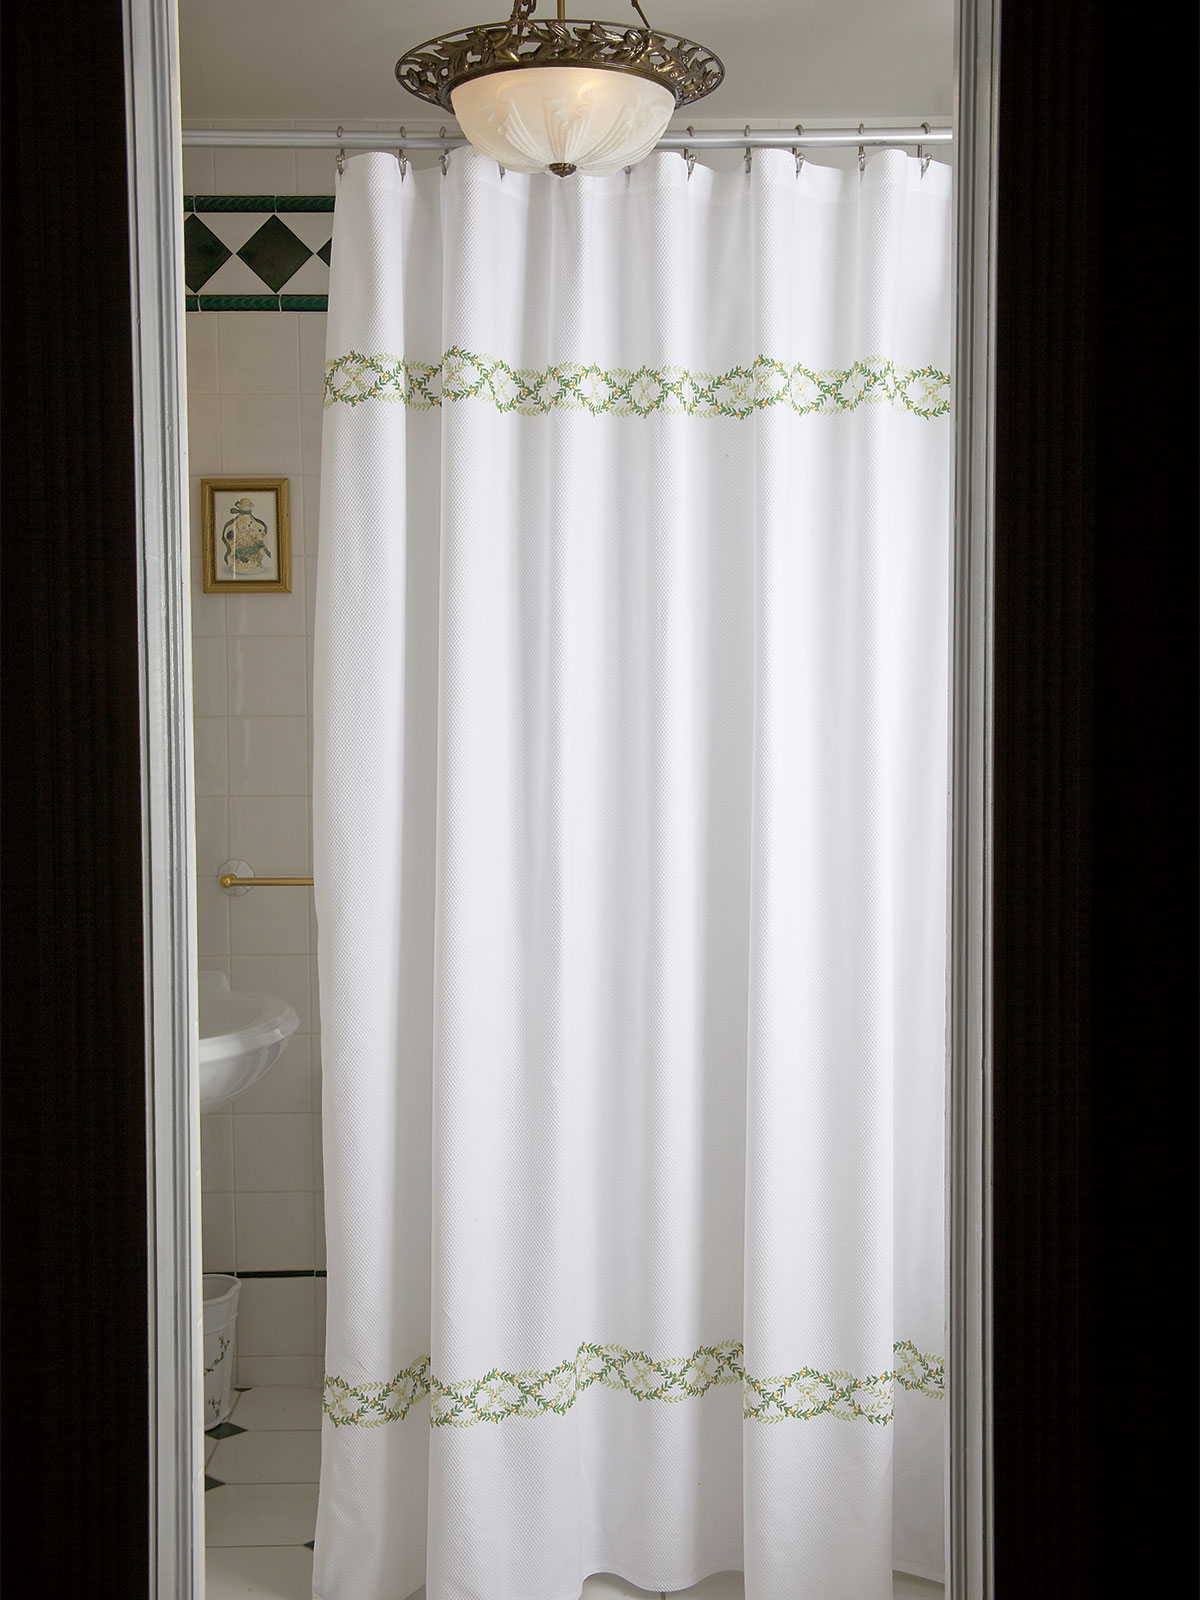 Charmant Arden Shower Curtain · Arden_Curtain_1568